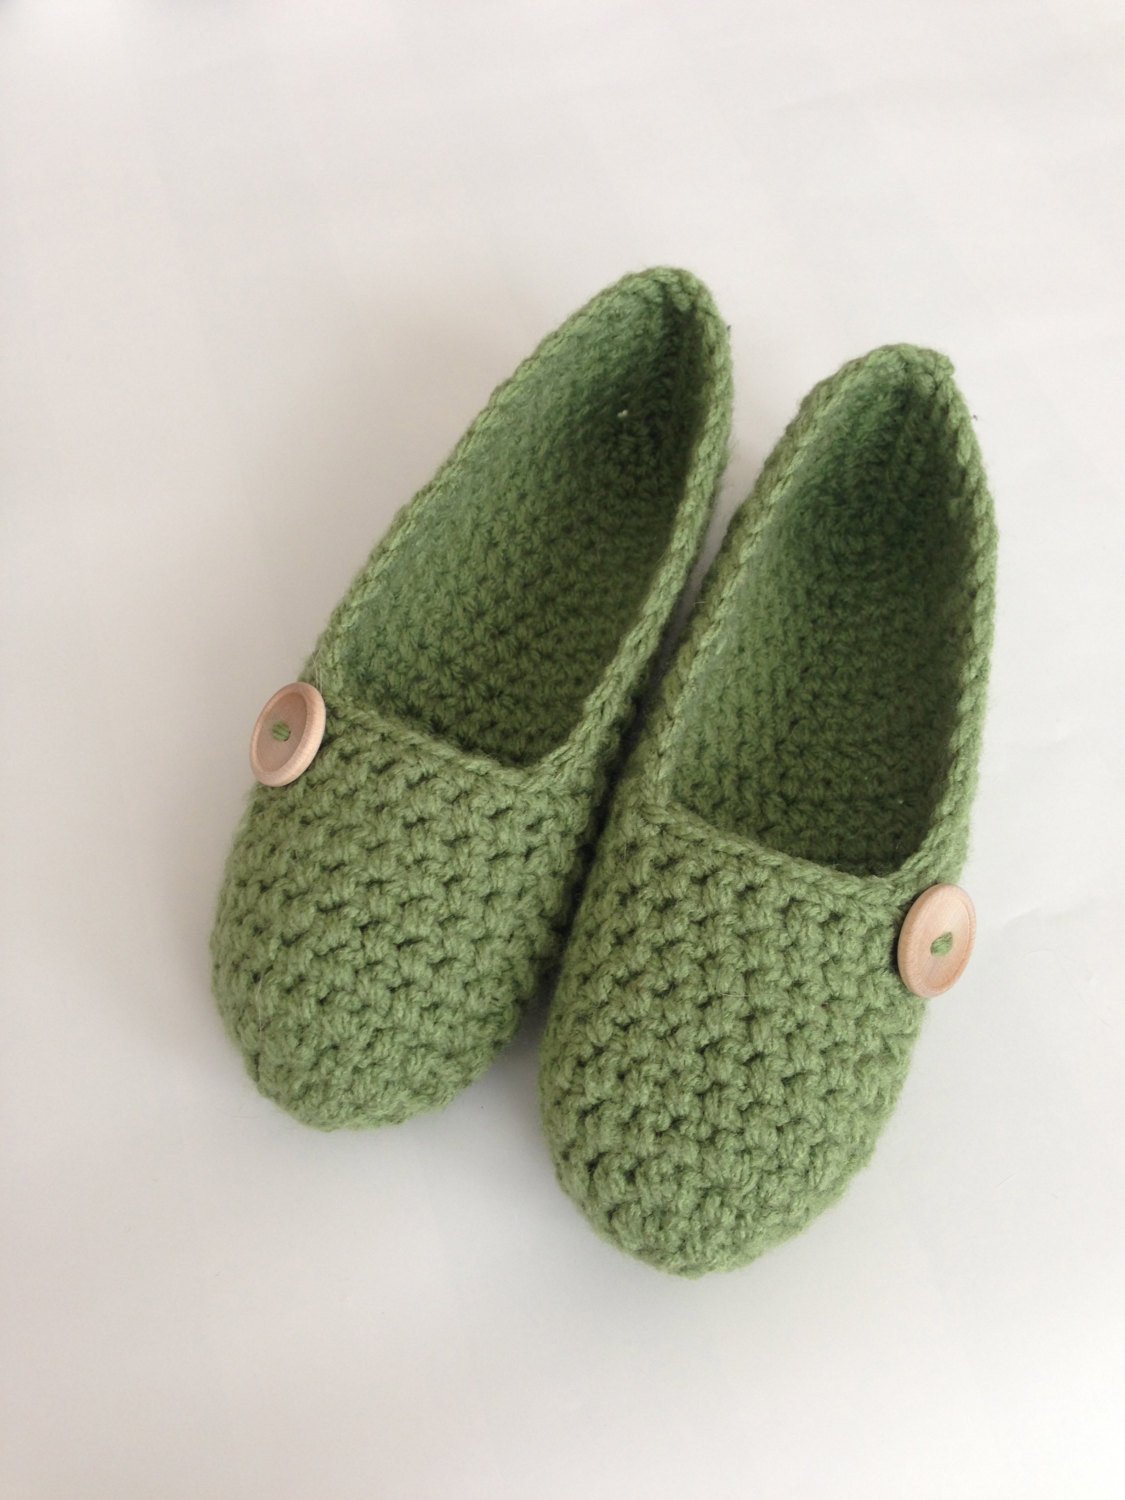 Crochet Booties for Adults Awesome Tea Leaf Simply Slippers Adult Crochet Slippers Women Of Delightful 42 Models Crochet Booties for Adults